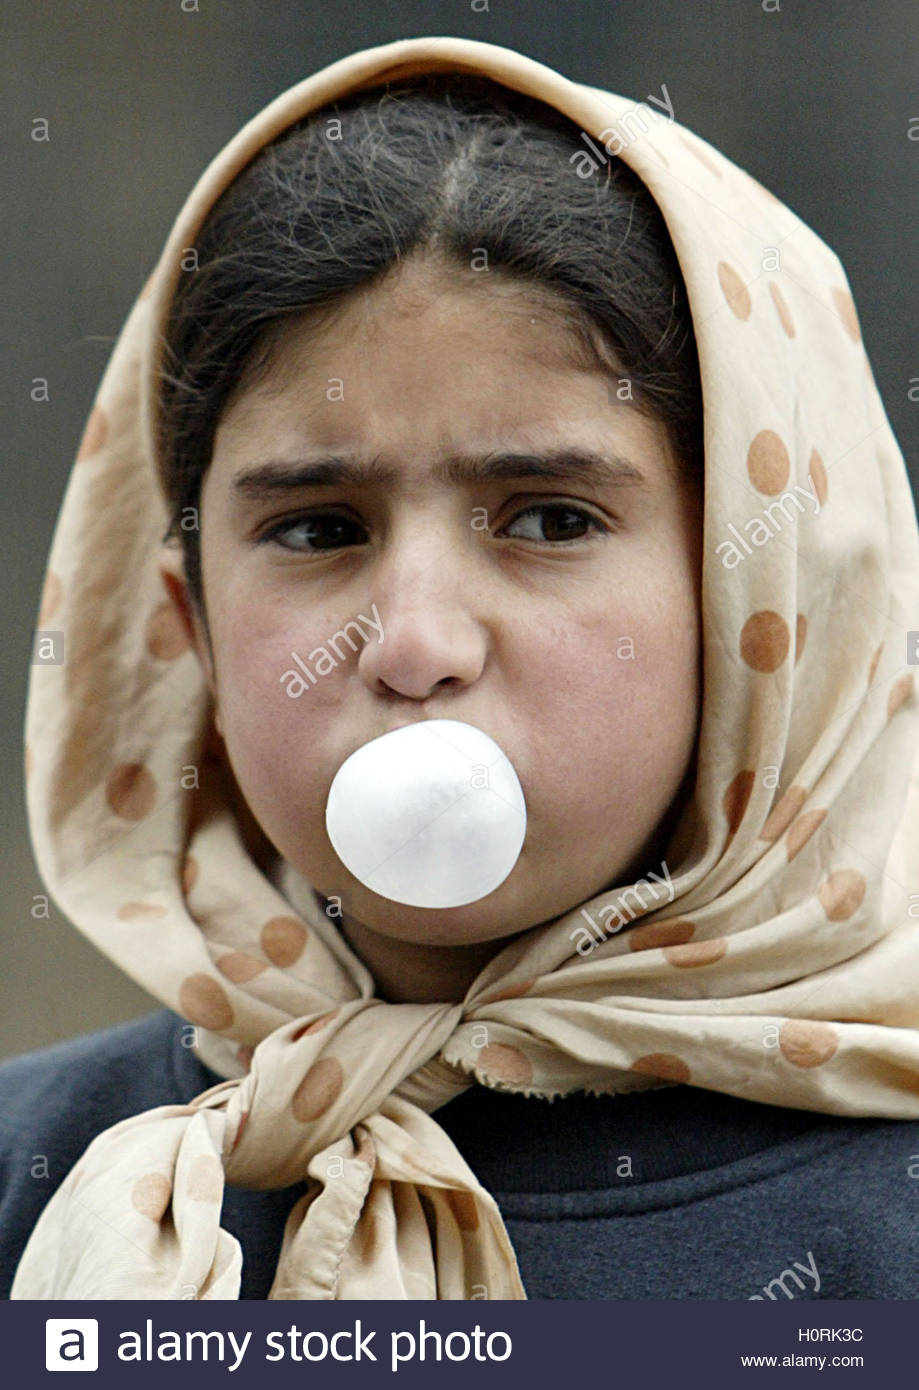 an afghan girl blows a bubble chewing gum in kabul one year after the ousting of the reactionary taliban regime women and girls in continue to face broad restrictions